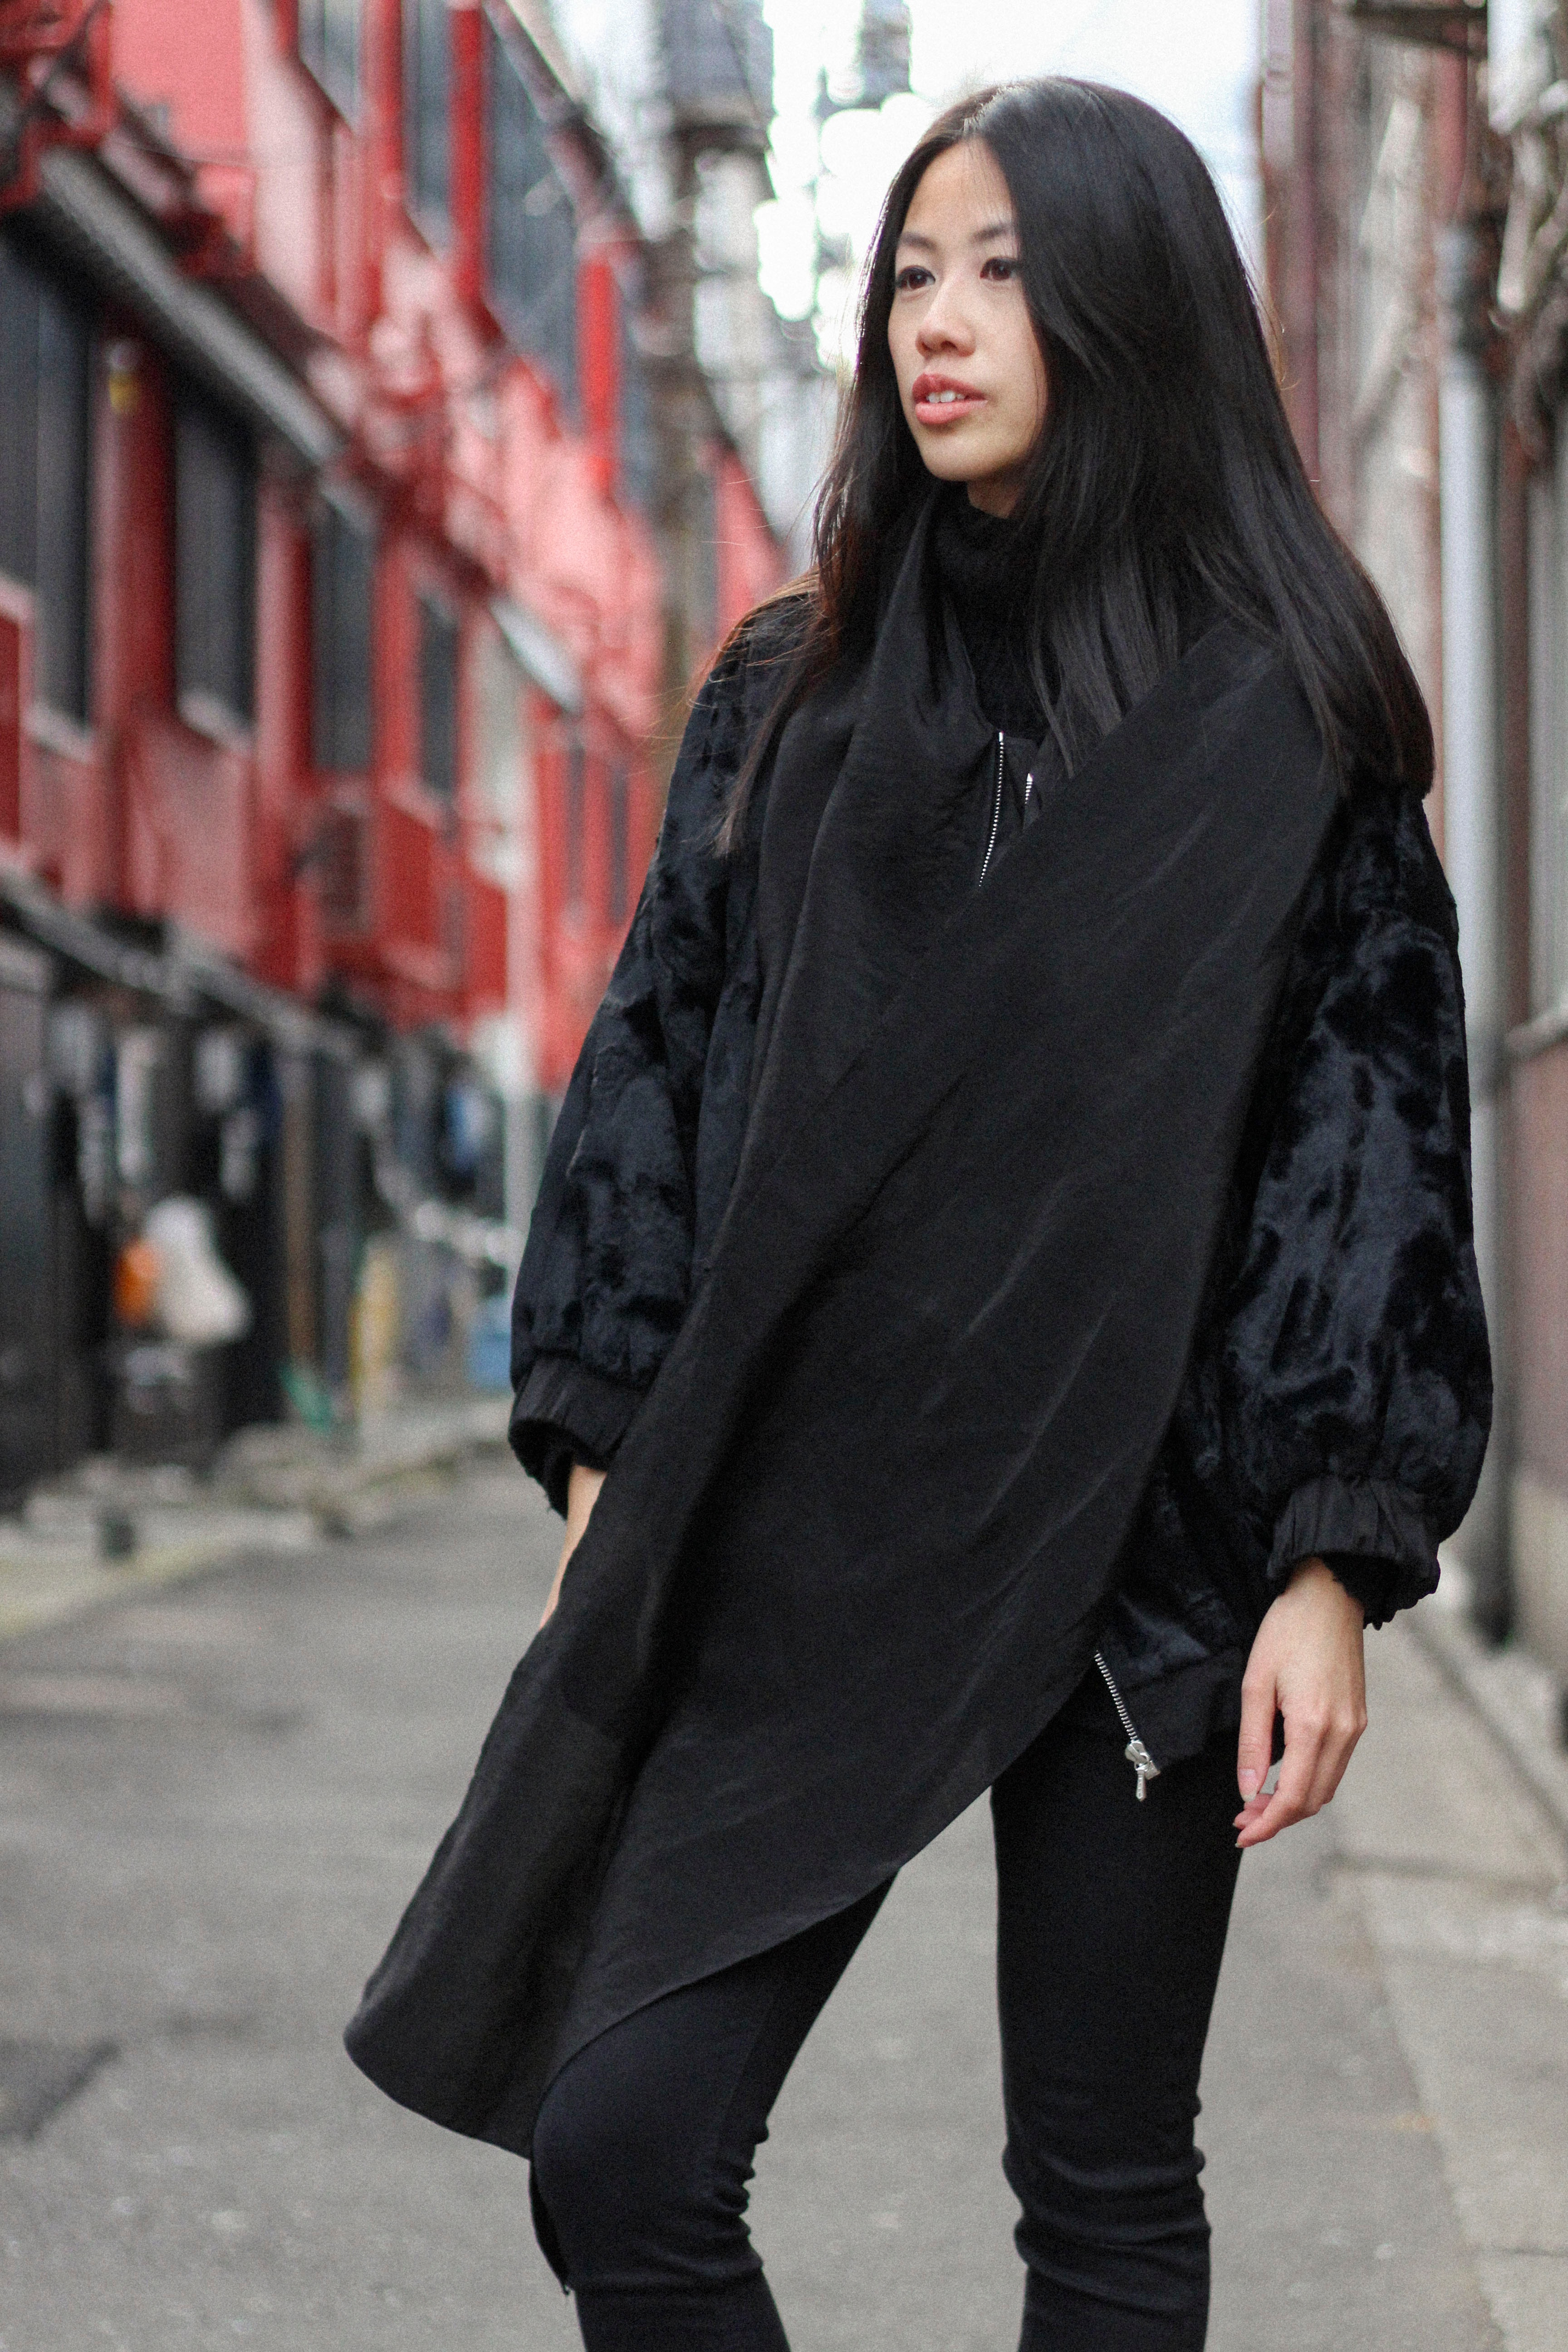 IHEARTALICE.DE – Fashion & Travel-Blog by Alice M. Huynh from Berlin/Germany: Tokyo, Japan Travel Diary – All Black Everything Look in Tokyo wearing Bomberjacket, Acne jeans & Nike Roshe-runs / Tokyo Streetstyle